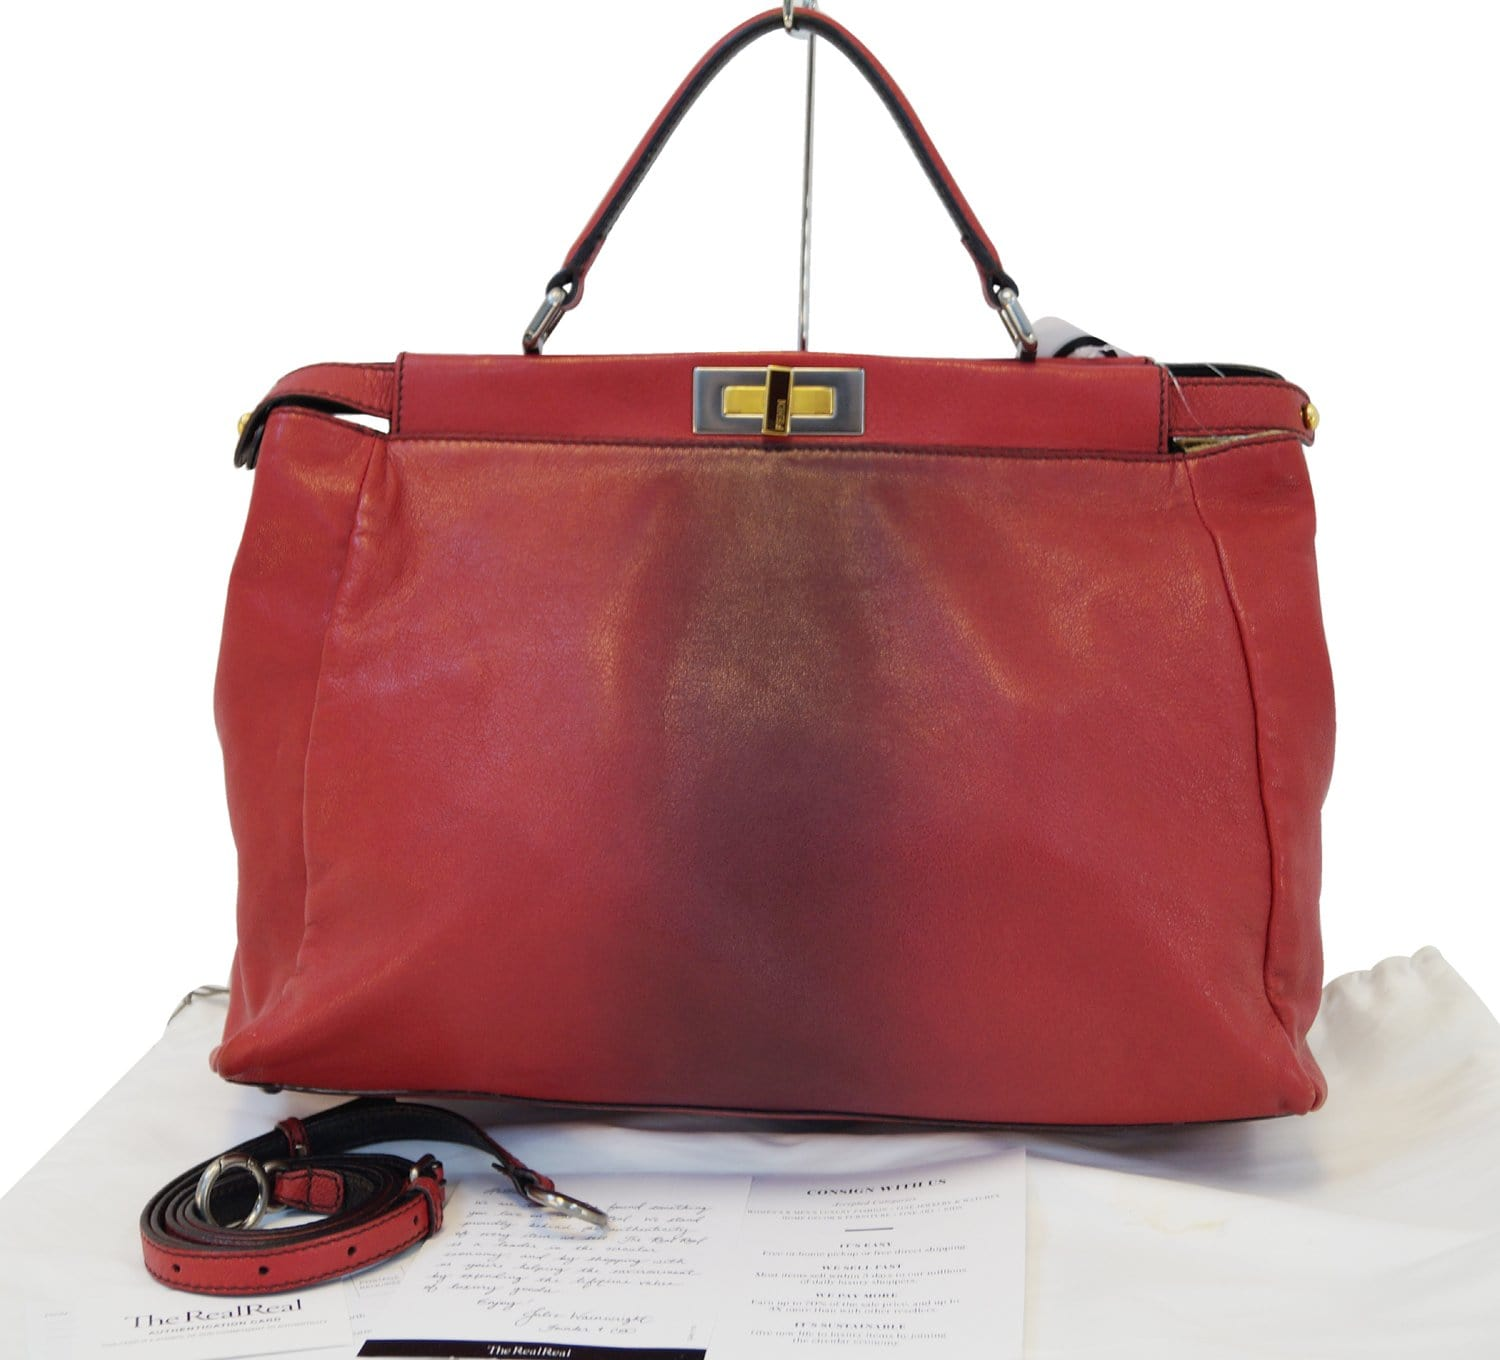 782ed3d2f130 FENDI Red Ombre Leather Peekaboo Large Satchel Bag